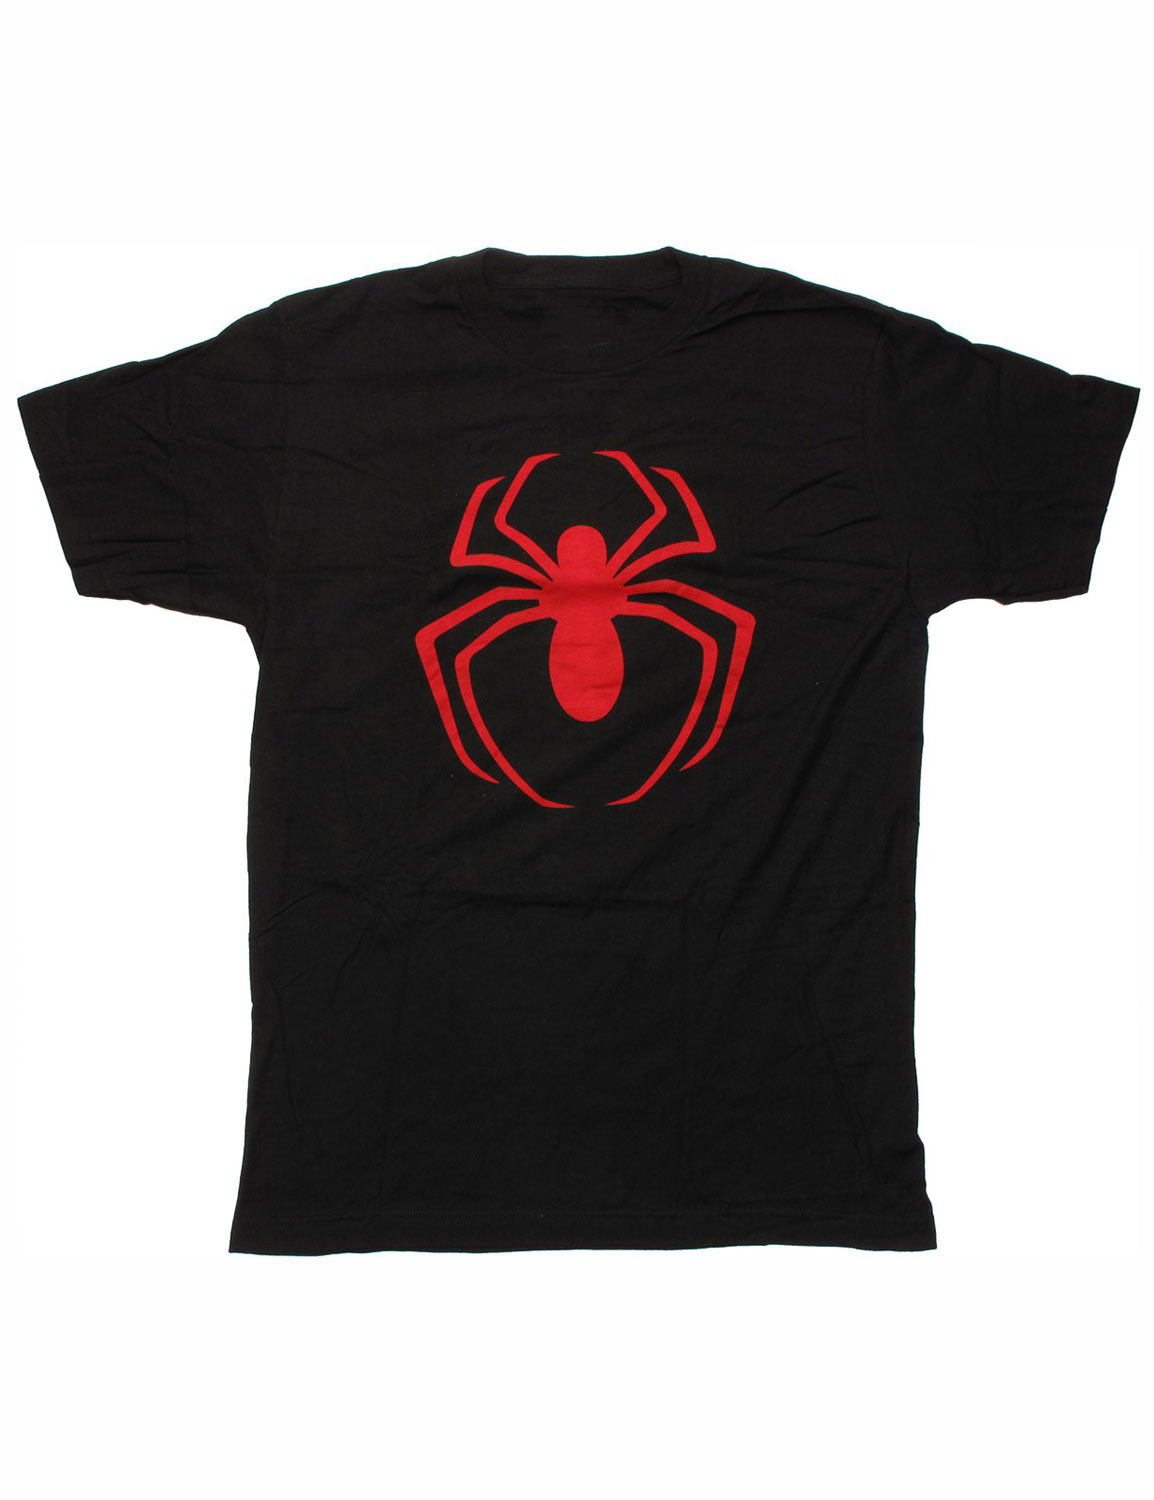 black spiderman t shirt for mens red logo hjackets. Black Bedroom Furniture Sets. Home Design Ideas